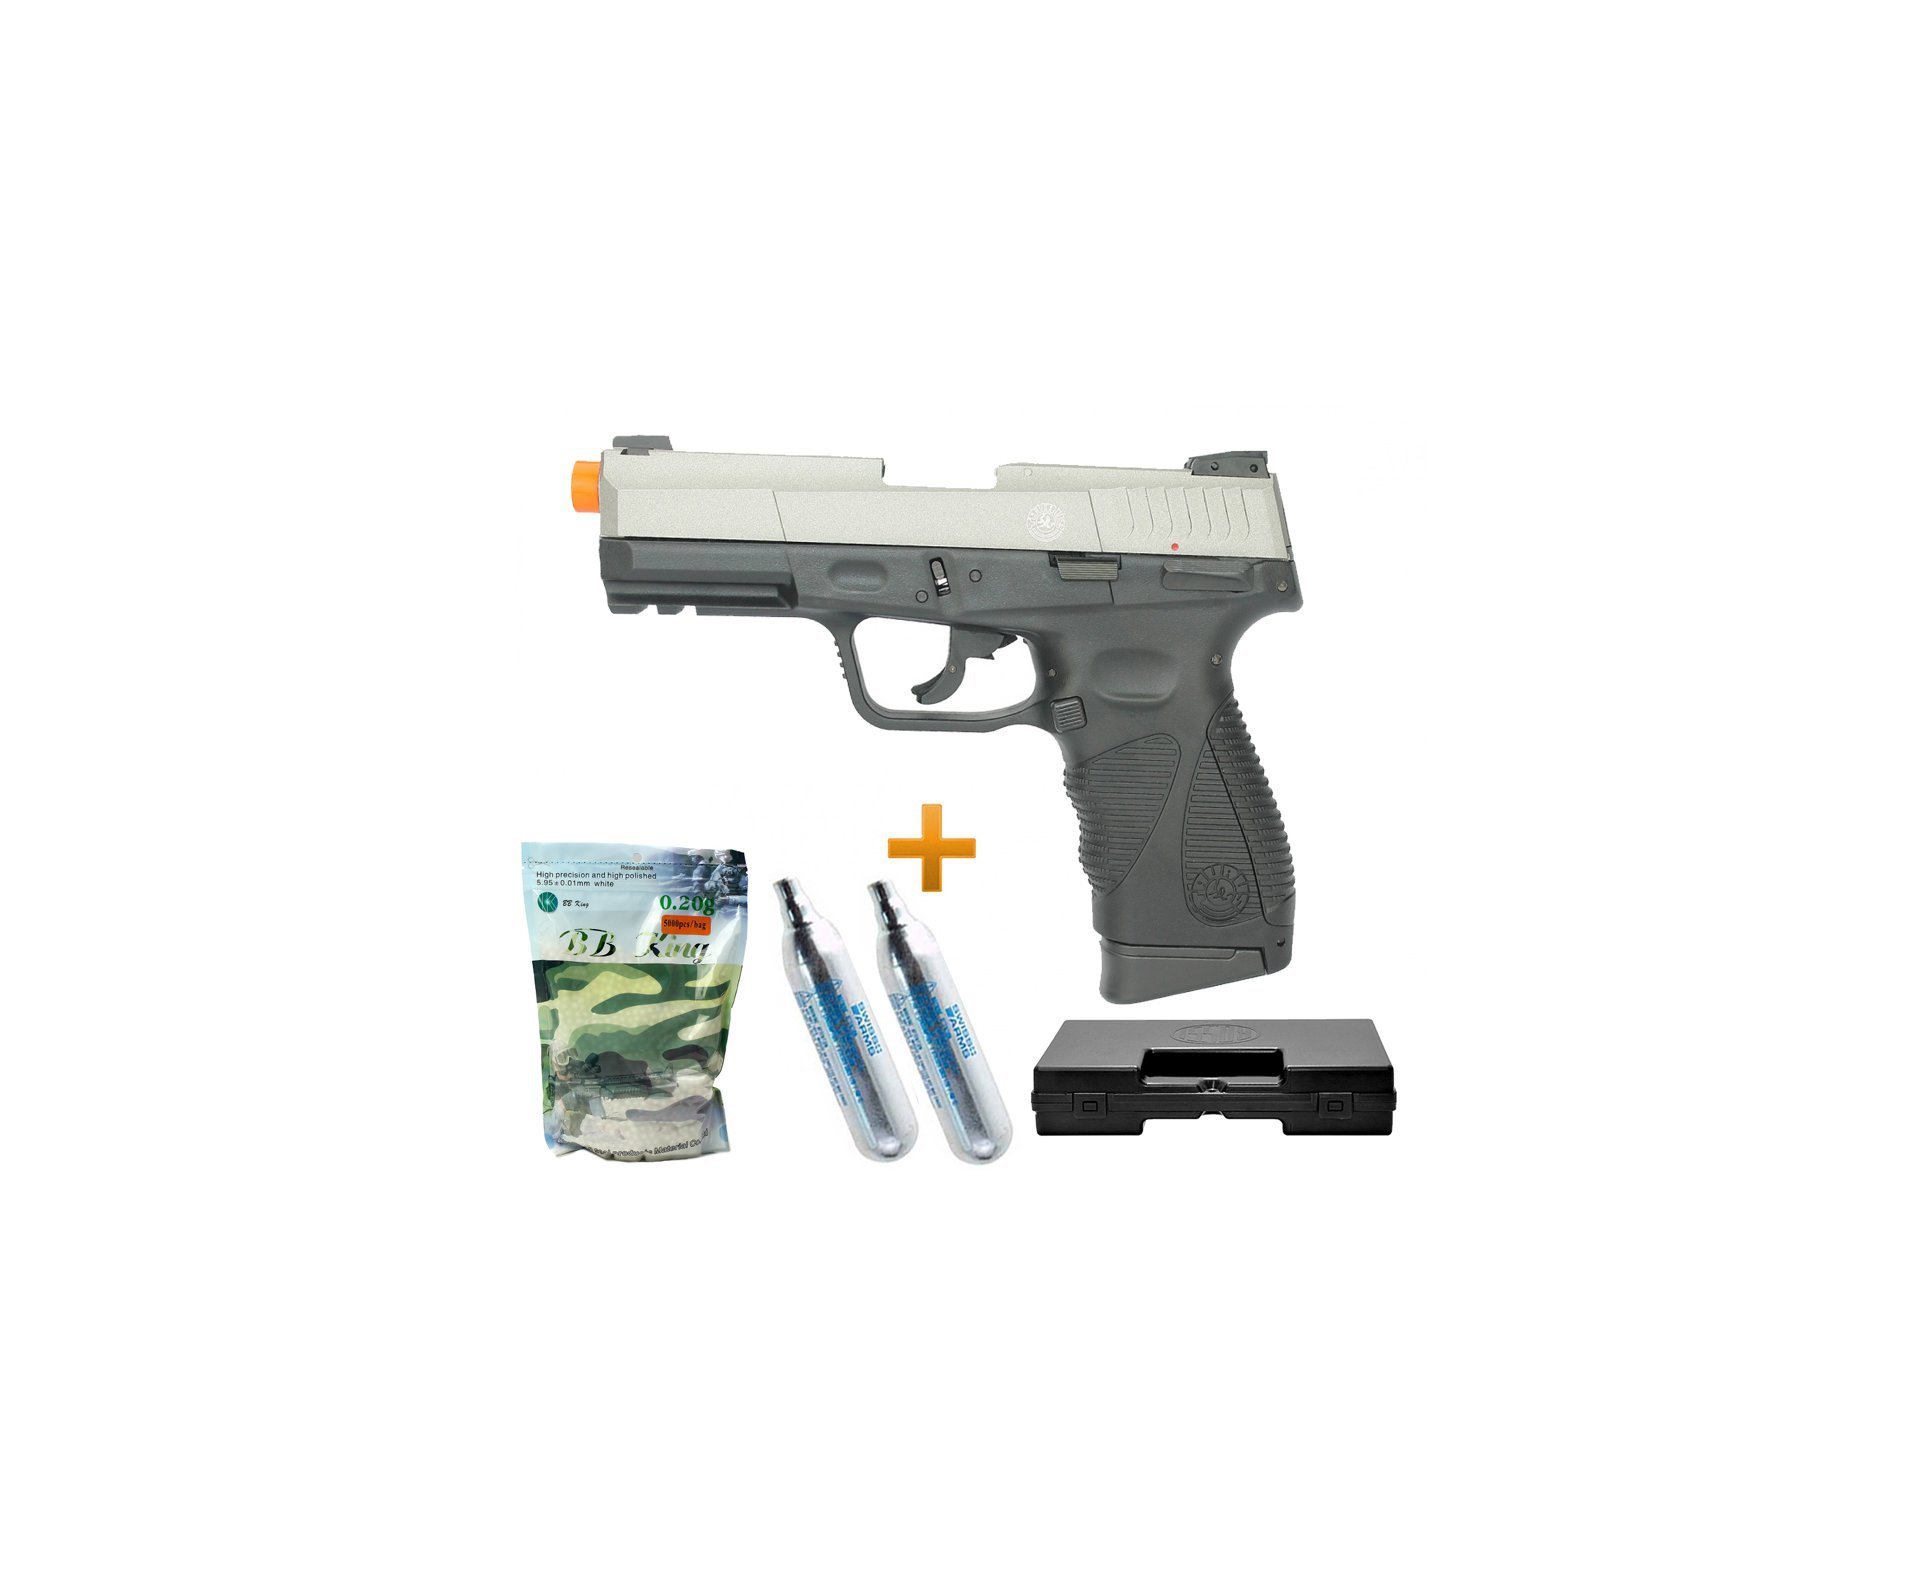 Pistola Airsoft Co2 Taurus Pt 24/7 G2 Blowback Slide Metal Silver 6.0 + Case + Bbs + Co2